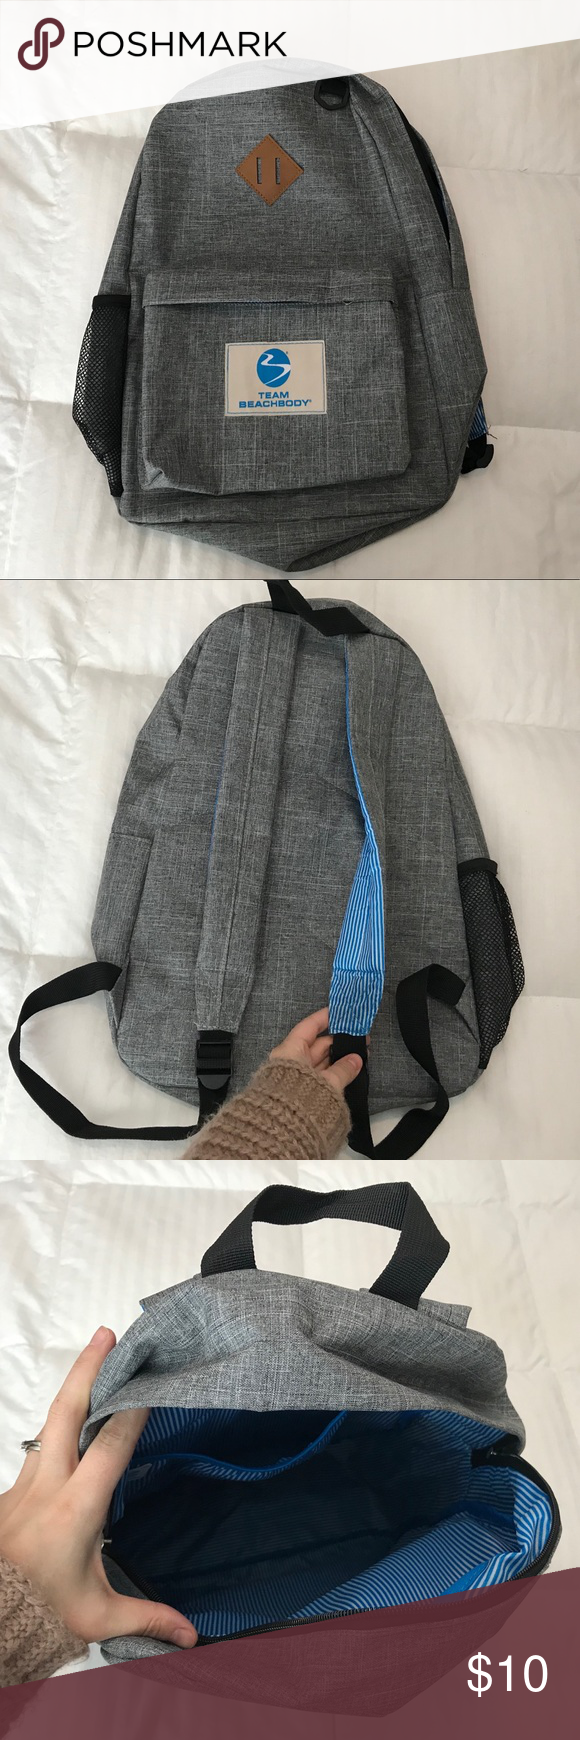 628eae43d30 Team Beachbody Backpack Canvas backpack in perfect condition! Used for a  weekend. Insides had a cute white and blue striped pattern.